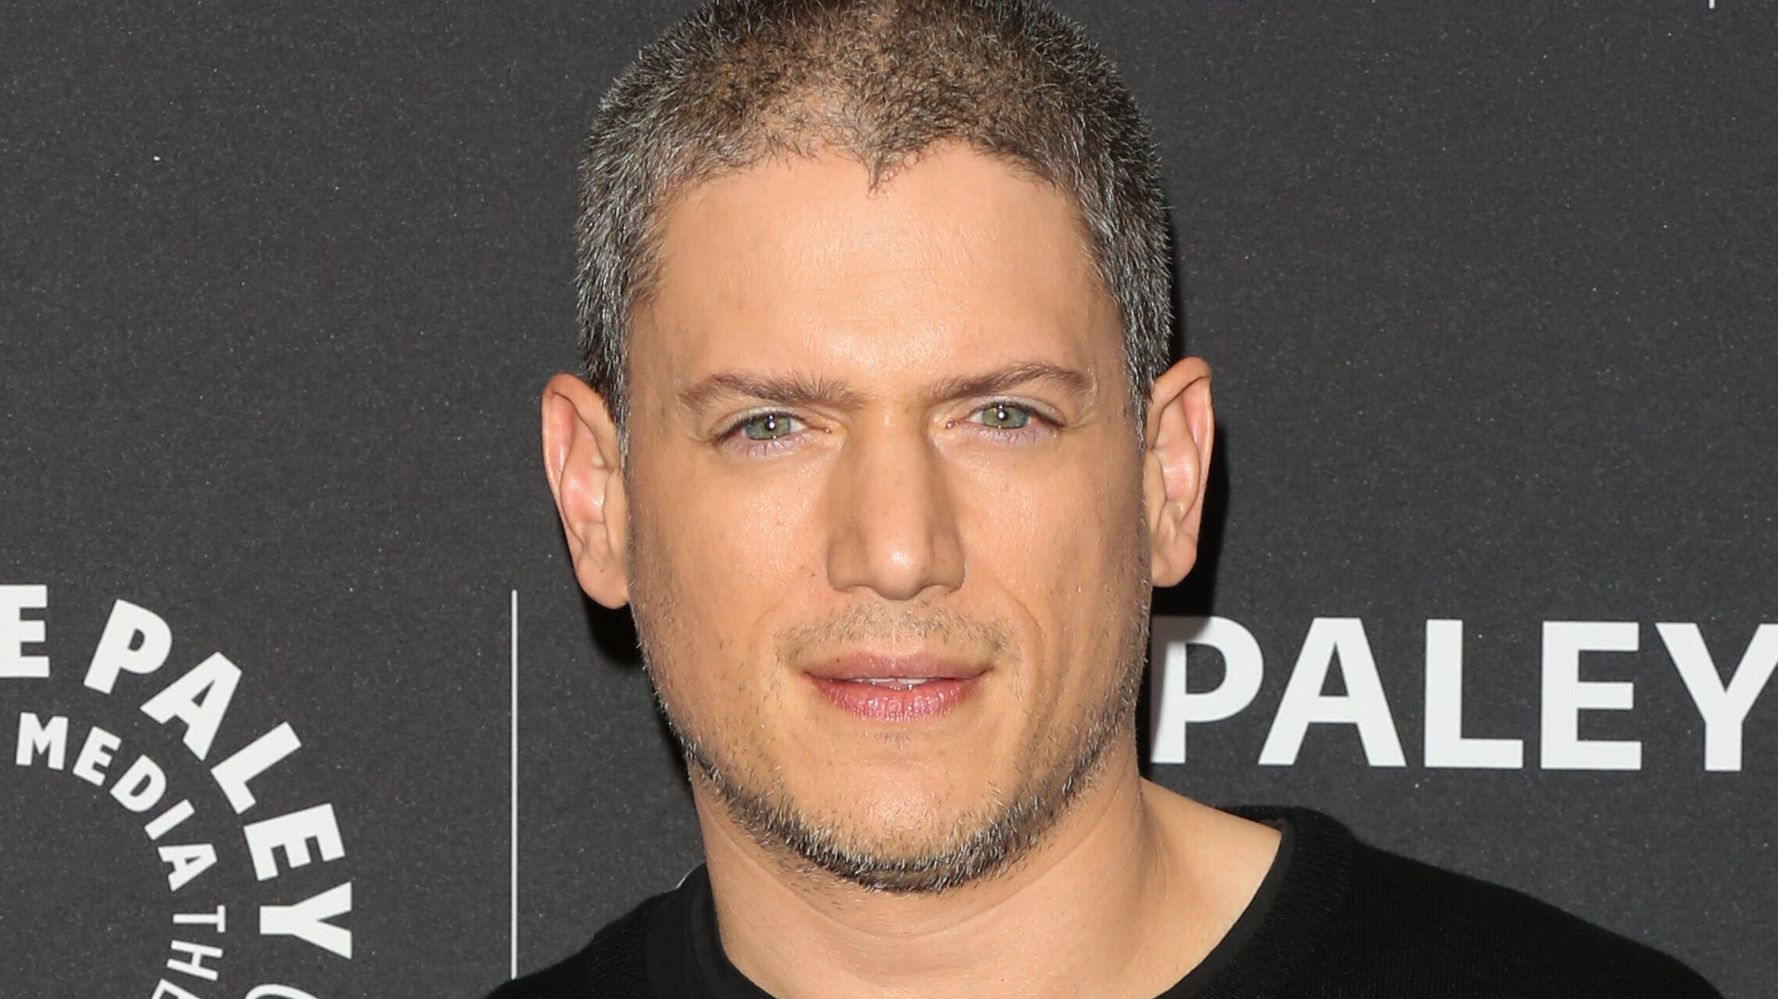 Wentworth Miller Says He's Done With 'Prison Break' And Playing Straight Men